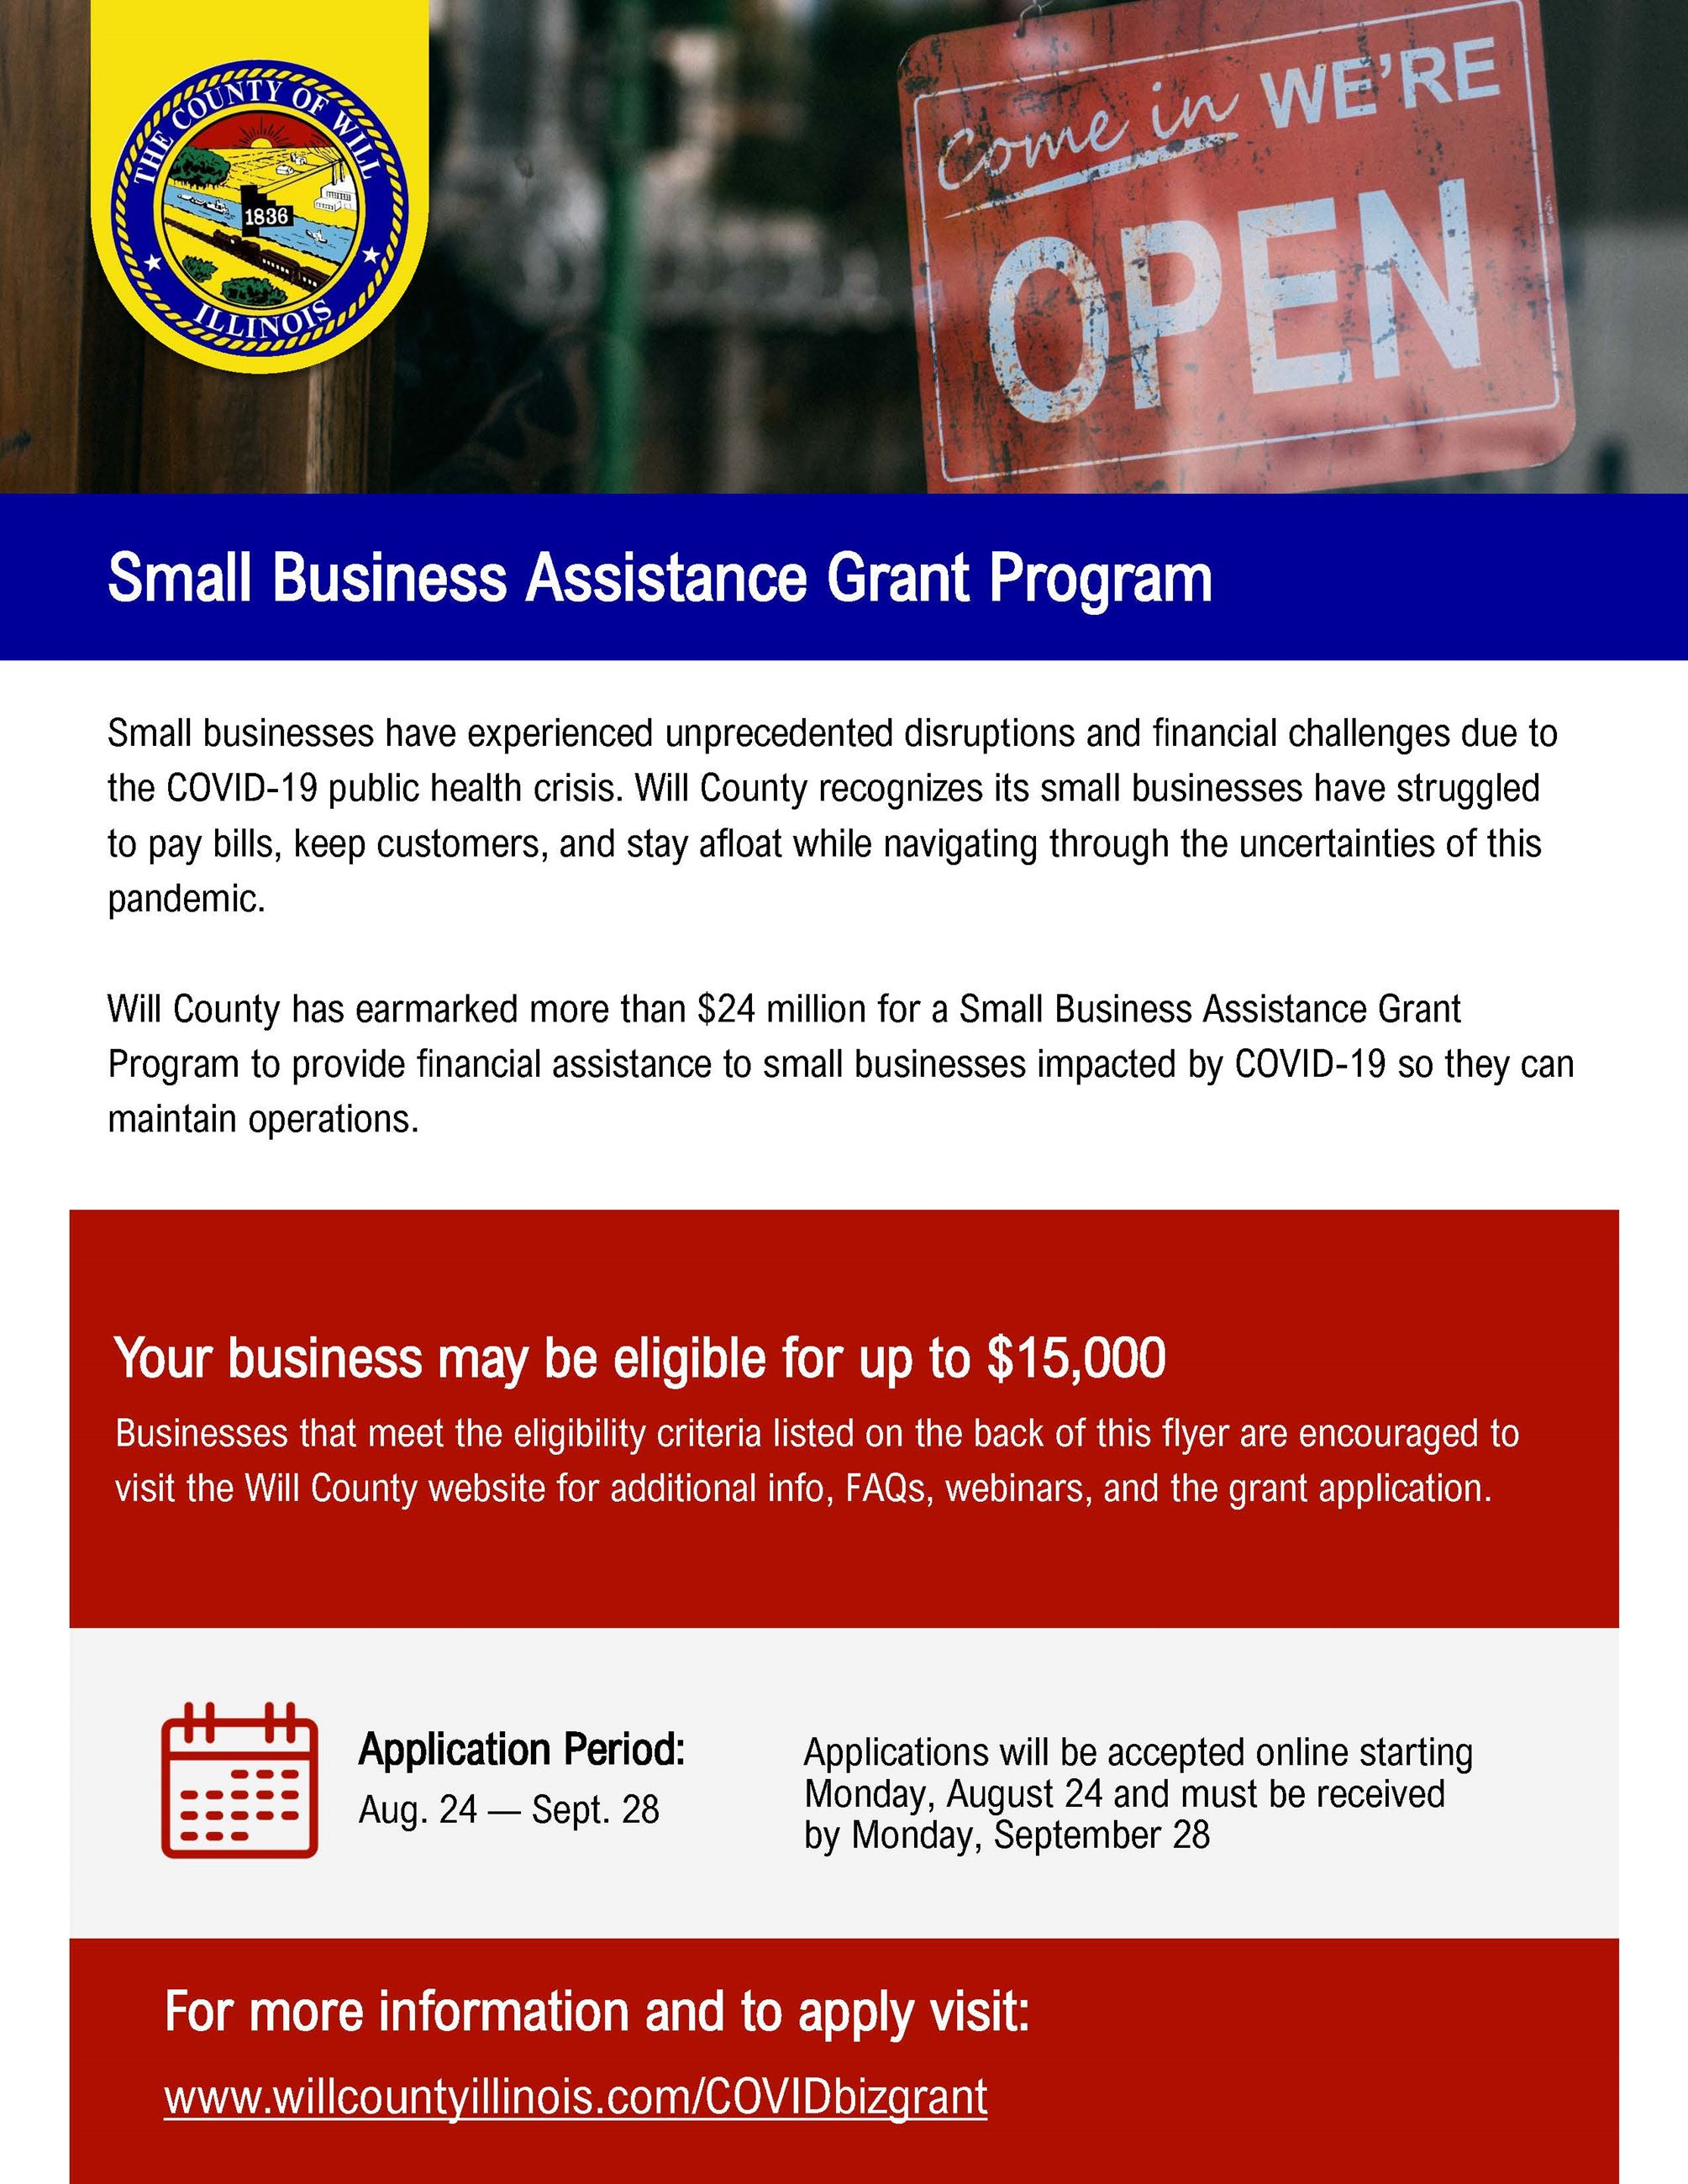 Will County Small Business Grant Program Flyer_v5_Page_1